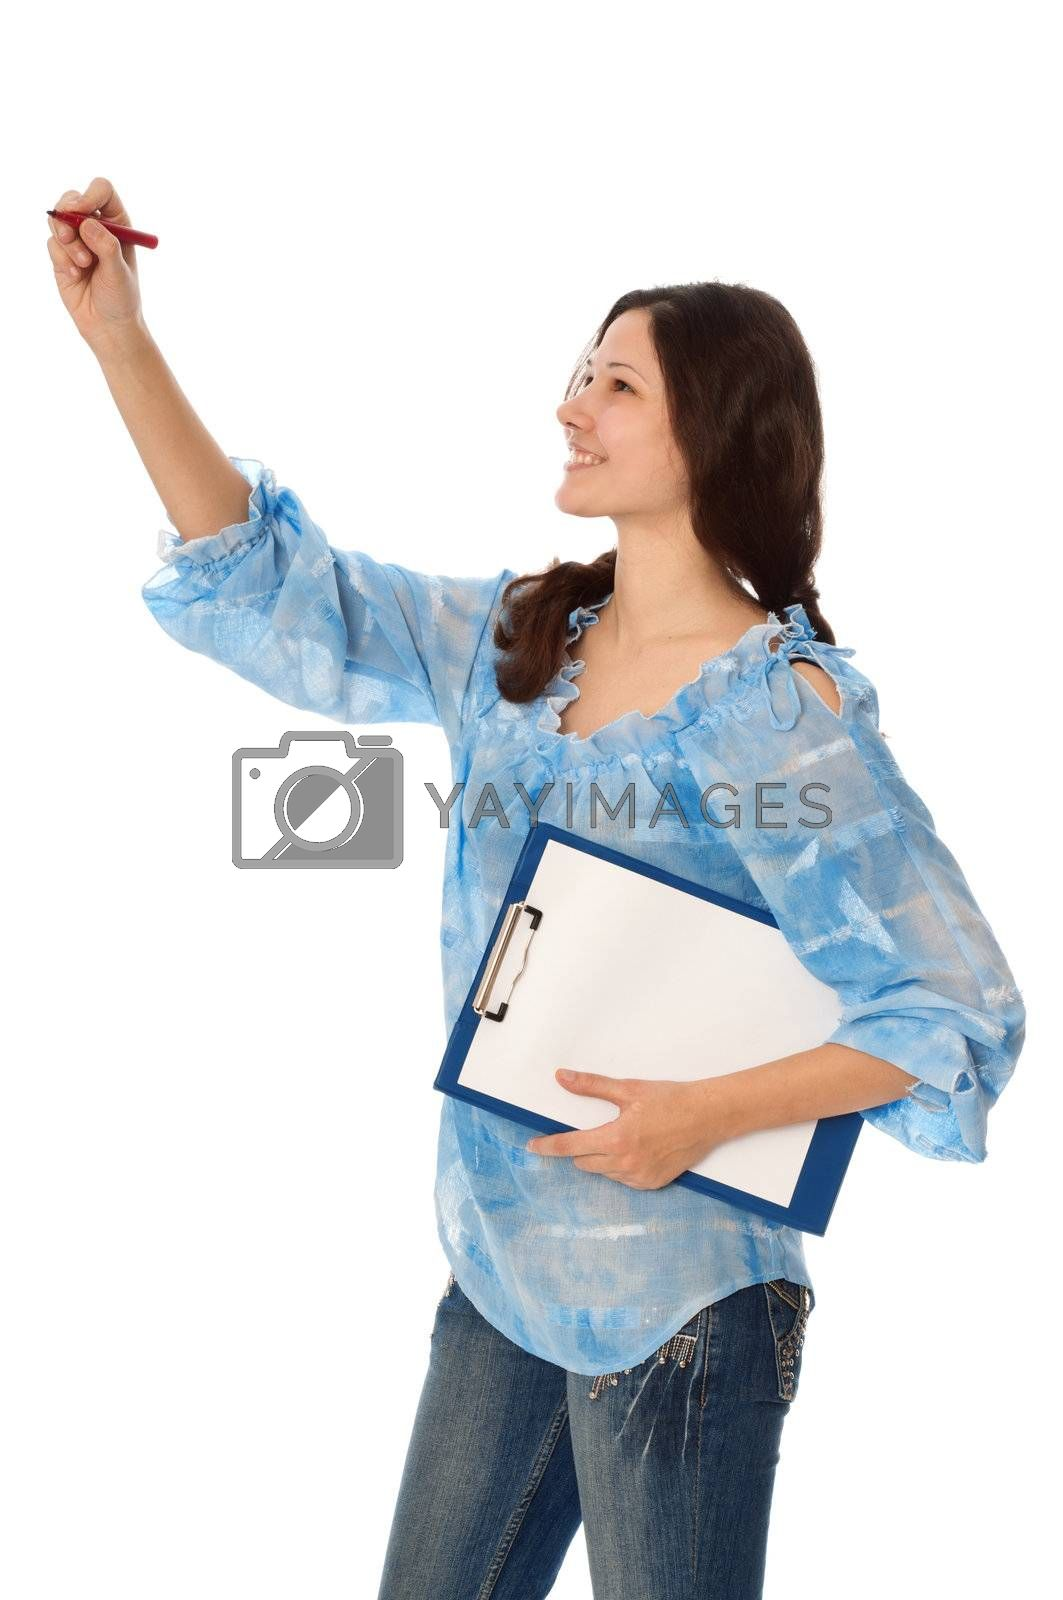 commodities expert with clipboard in the hand drawing a diagram